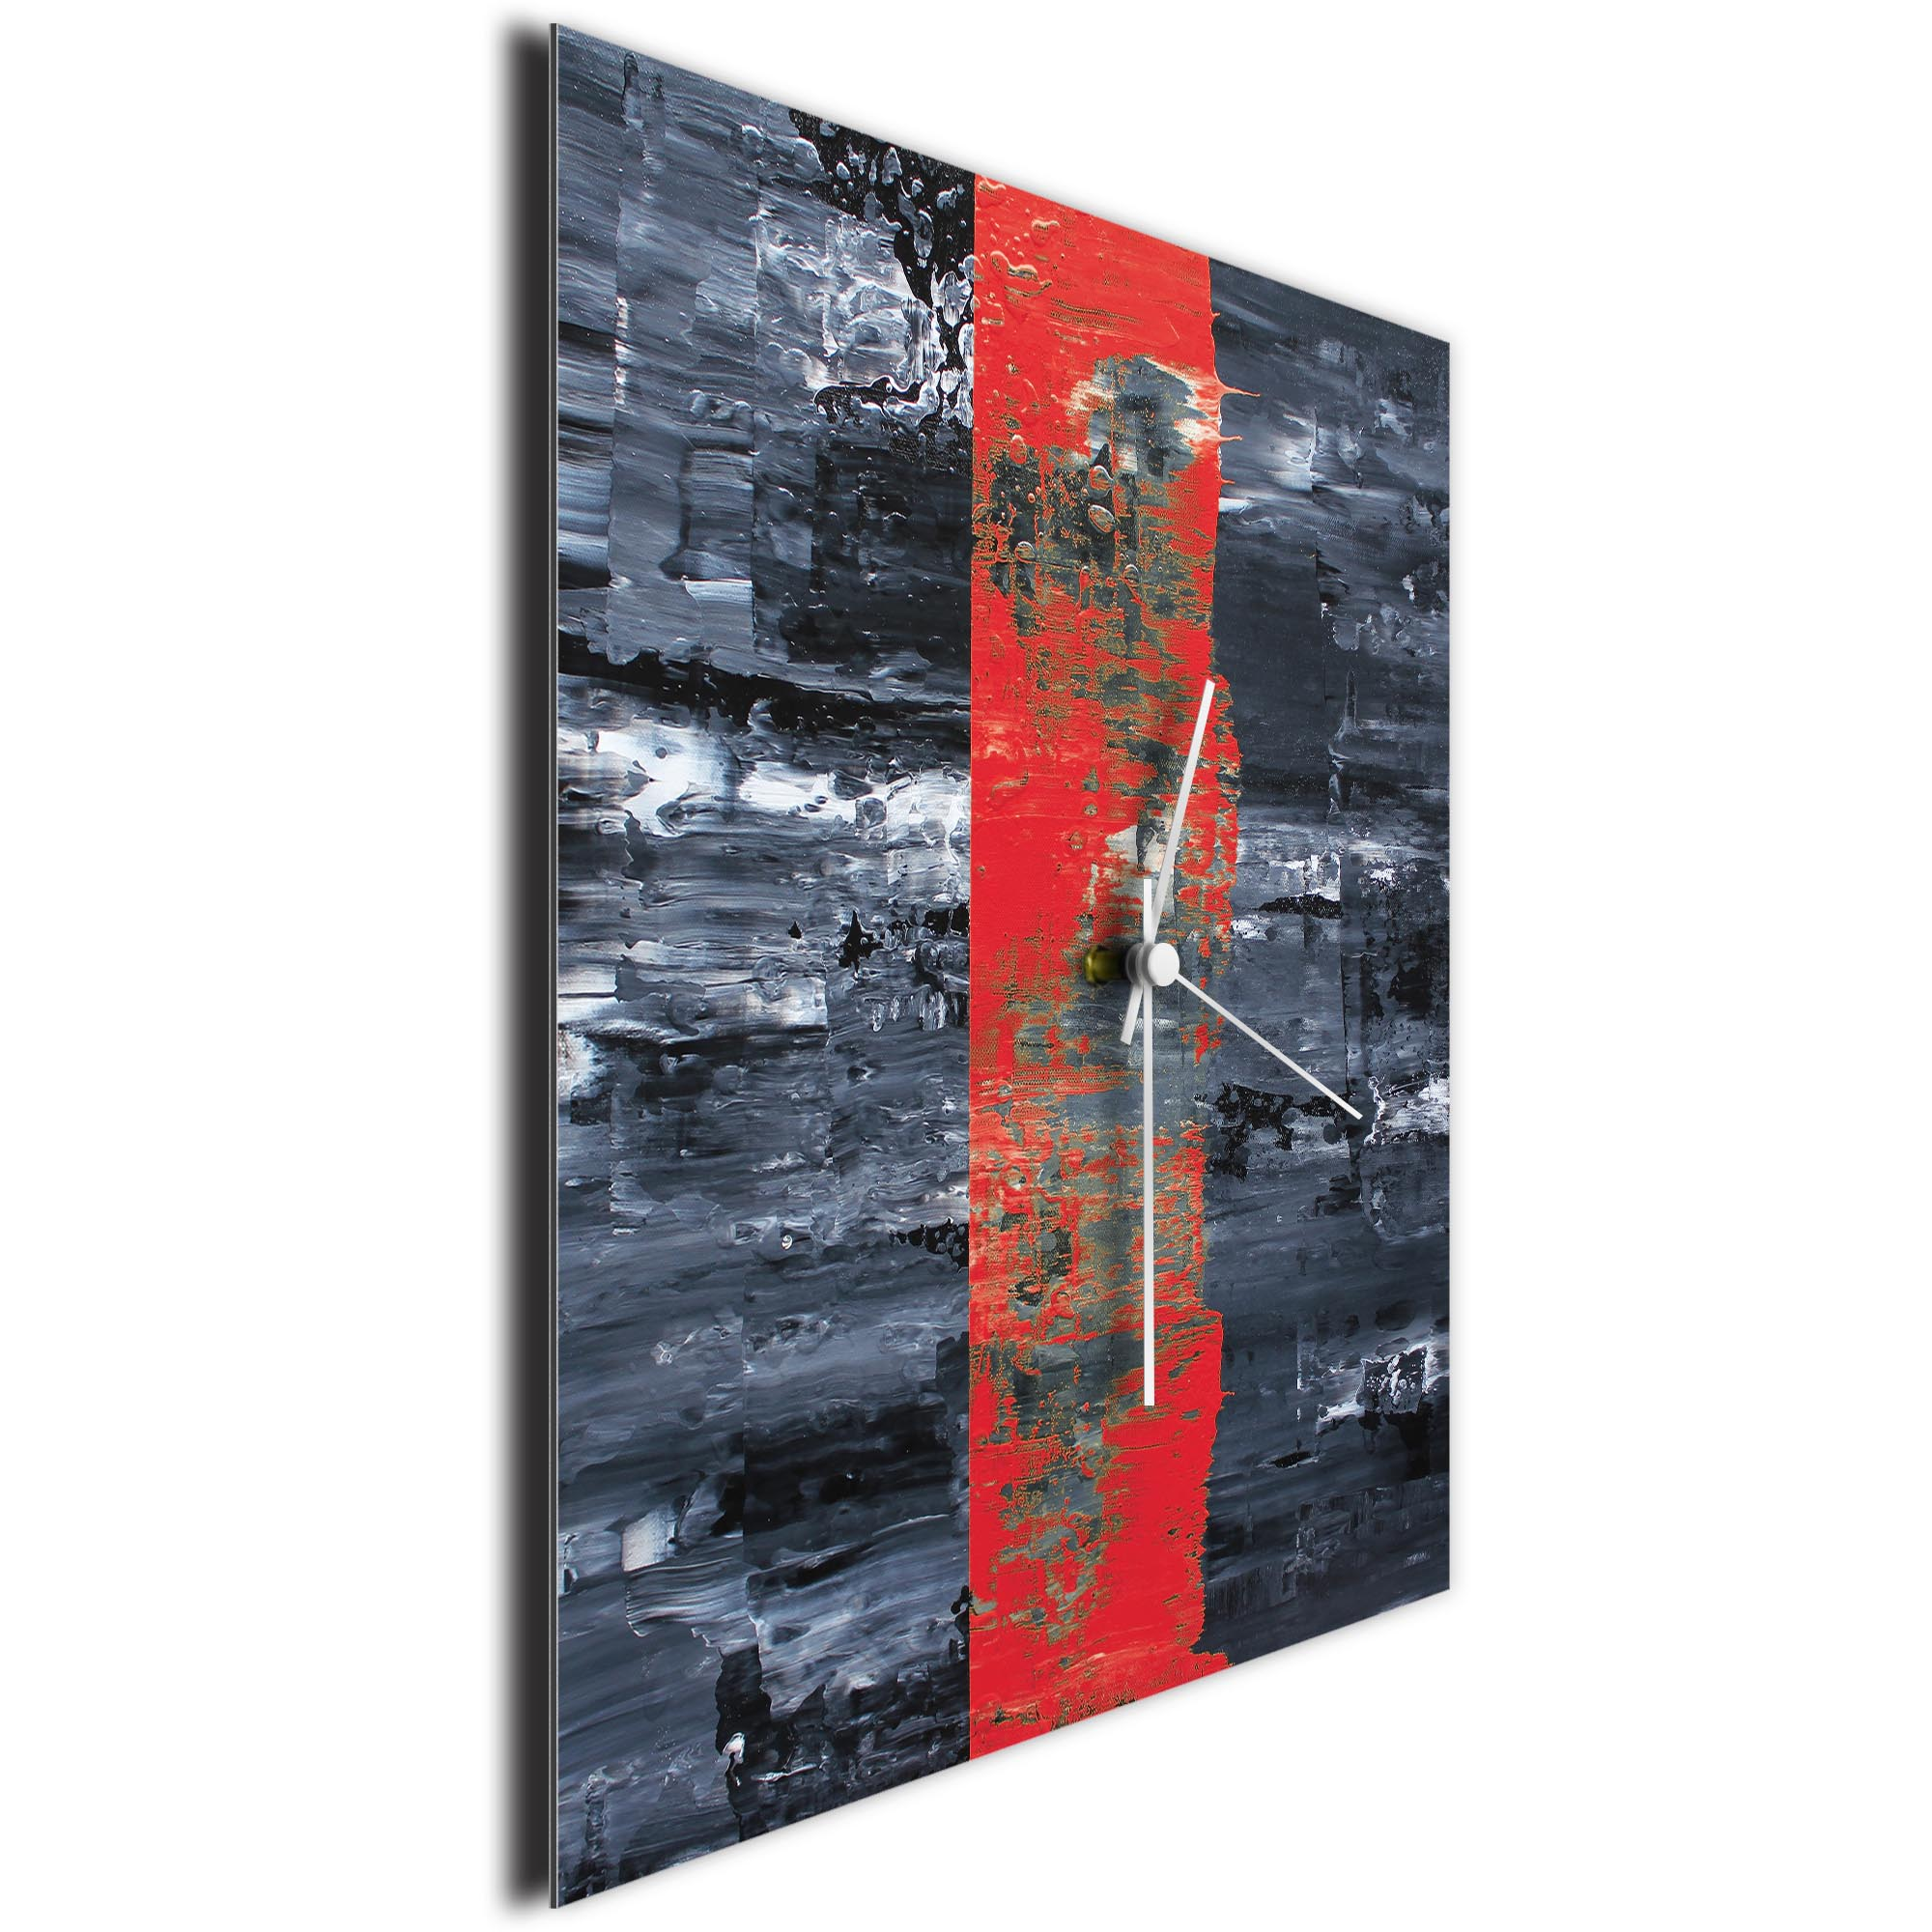 Red Line Square Clock by Mendo Vasilevski - Urban Abstract Home Decor - Image 3